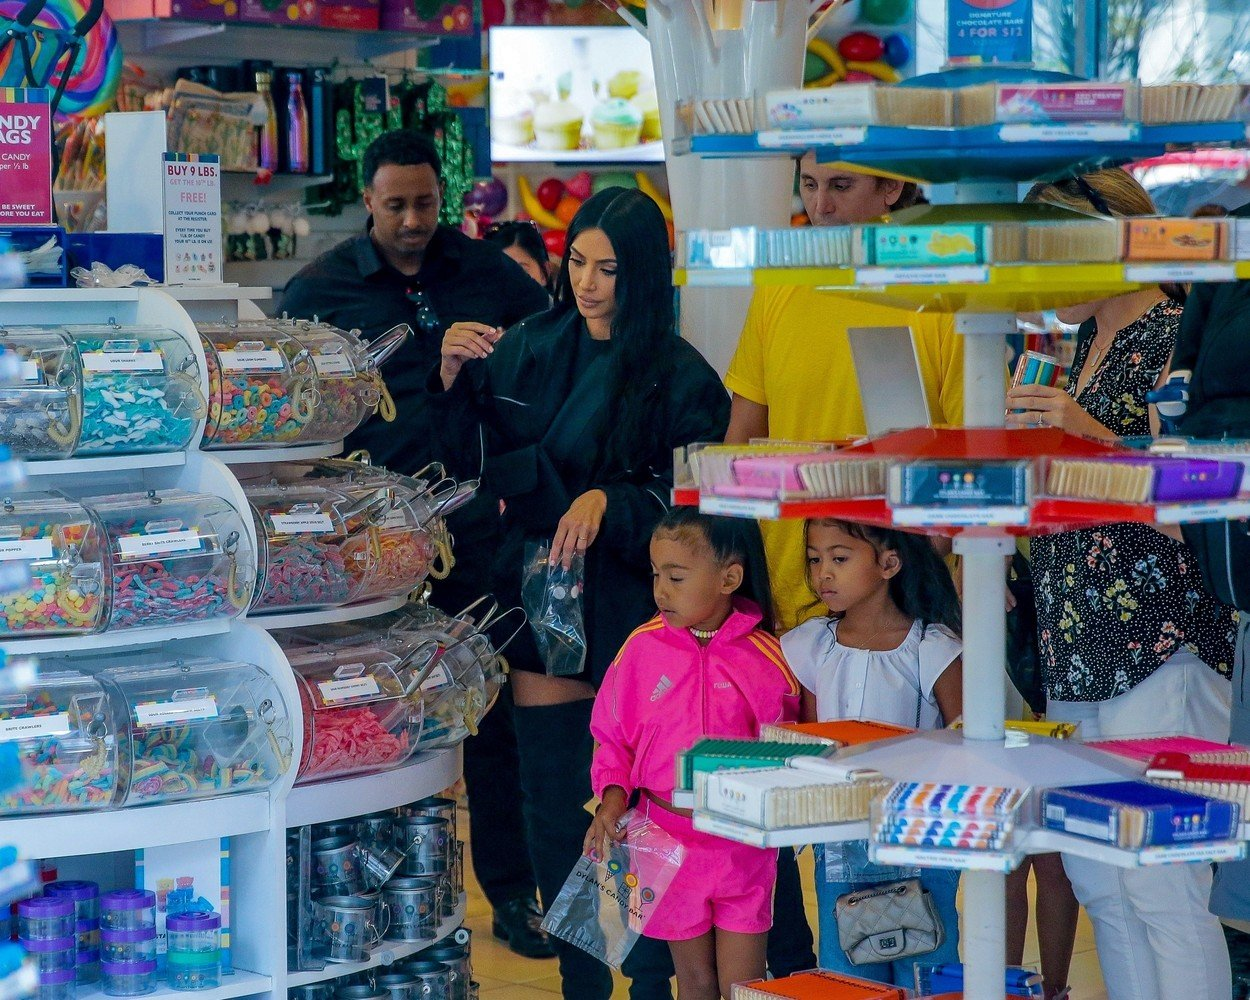 New York, NY  - Kim Kardashian takes her daughter North and her friend to grab ice cream at Dylan's Candy Bar in New York City.  Pictured: Kim Kardashian, North West,  BACKGRID USA 14 JUNE 2018, Image: 374924913, License: Rights-managed, Restrictions: , Model Release: no, Credit line: Profimedia, AKM-GSI